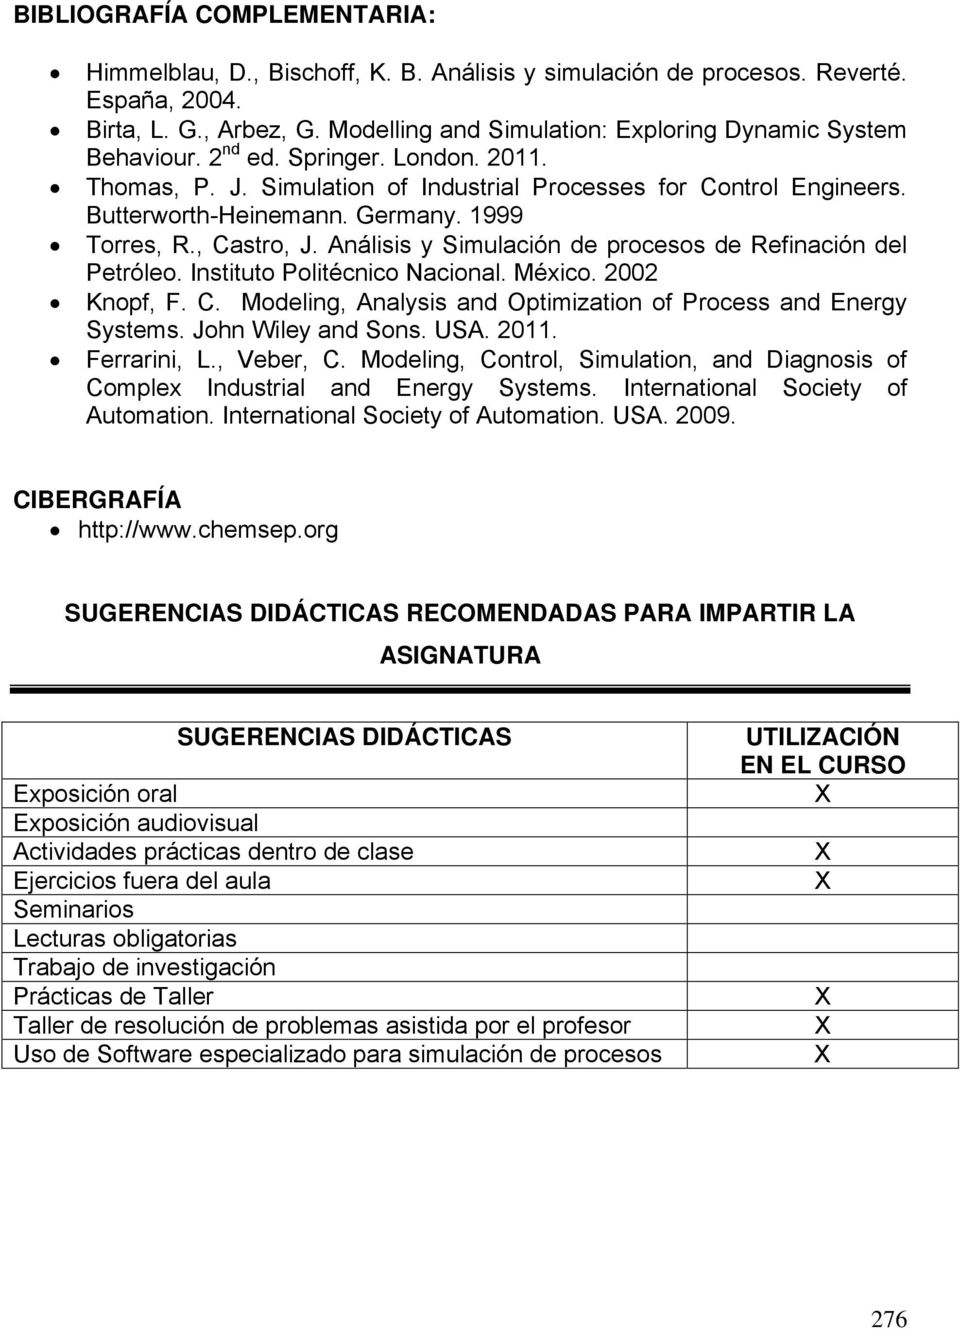 1999 Torres, R., Castro, J. Análisis y Simulación de procesos de Refinación del Petróleo. Instituto Politécnico Nacional. México. 2002 Knopf, F. C. Modeling, Analysis and Optimization of Process and Energy Systems.